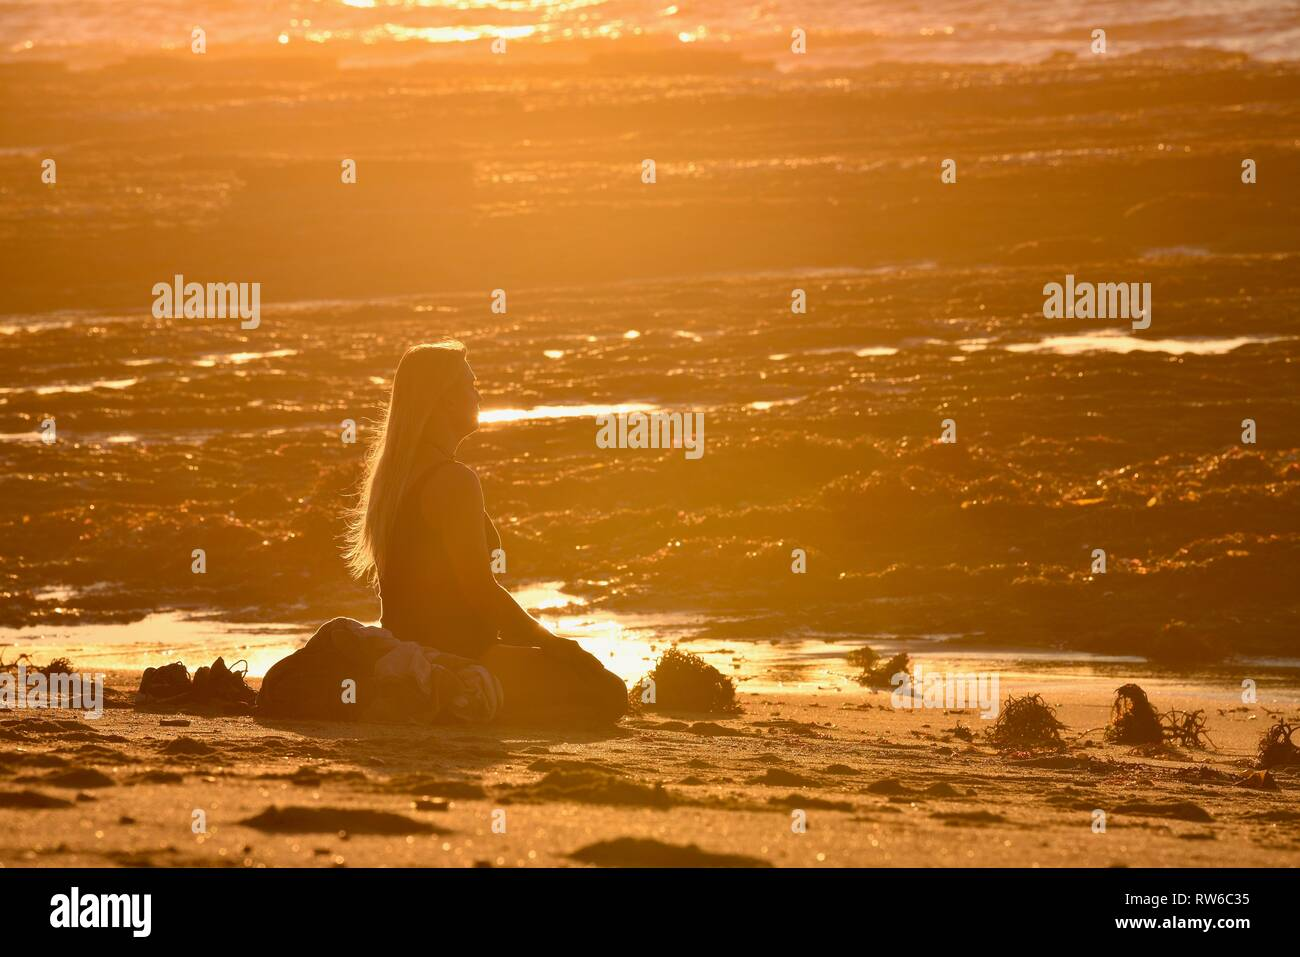 Young, blonde woman sitting and meditating on beach at sunset, at Sunset Cliffs Natural Park, Point Loma, San Diego, California, USA Stock Photo